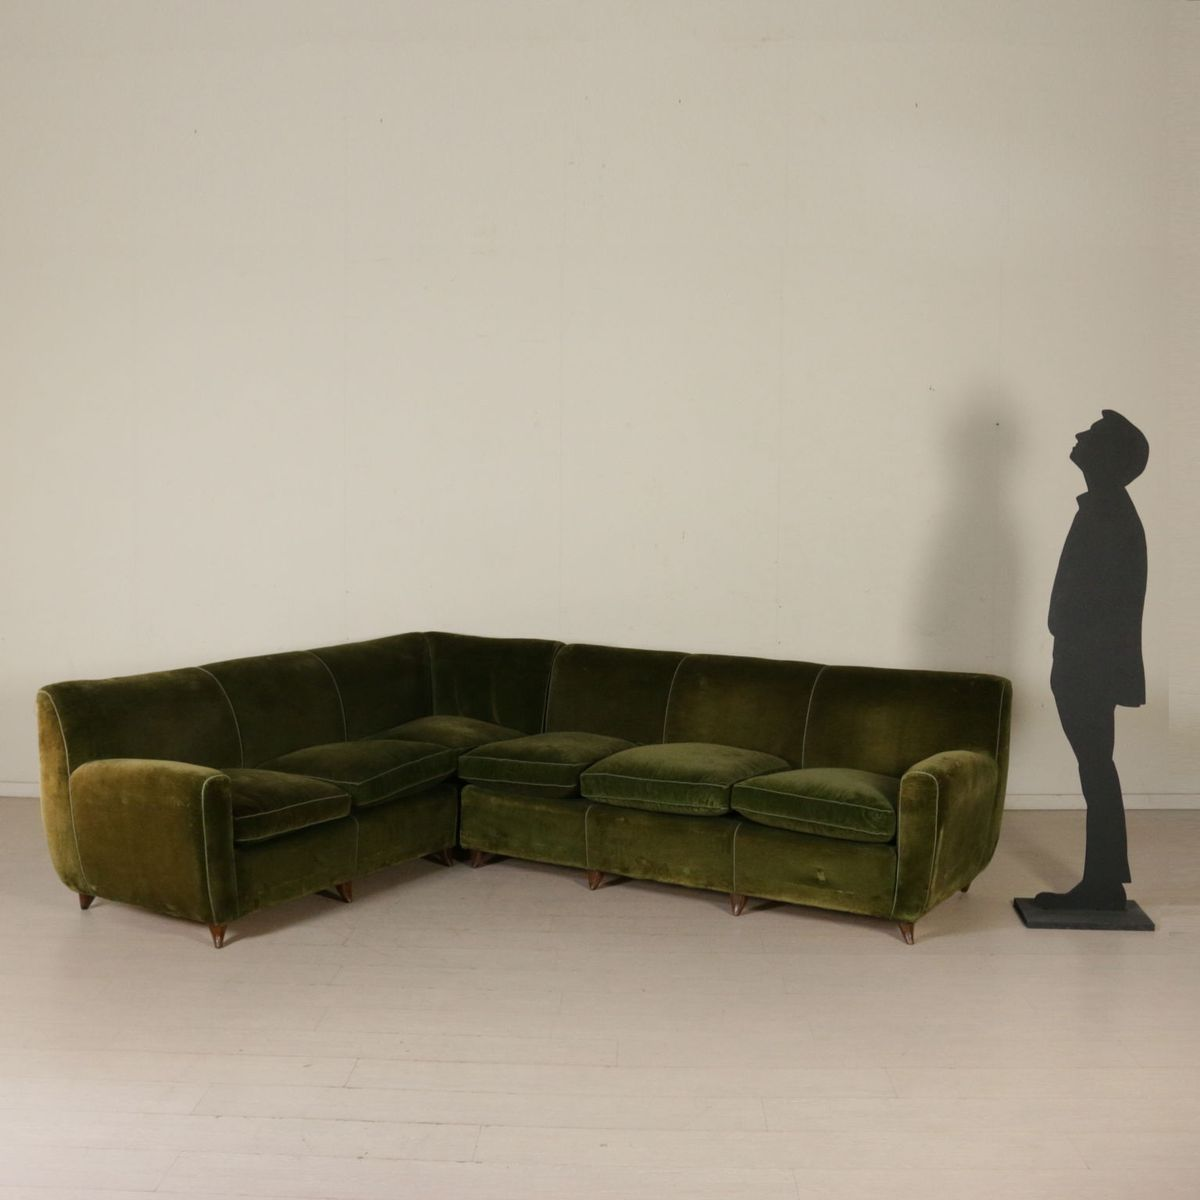 Vintage Italian Corner Sofa With Feather Cushions For Sale At Pamono